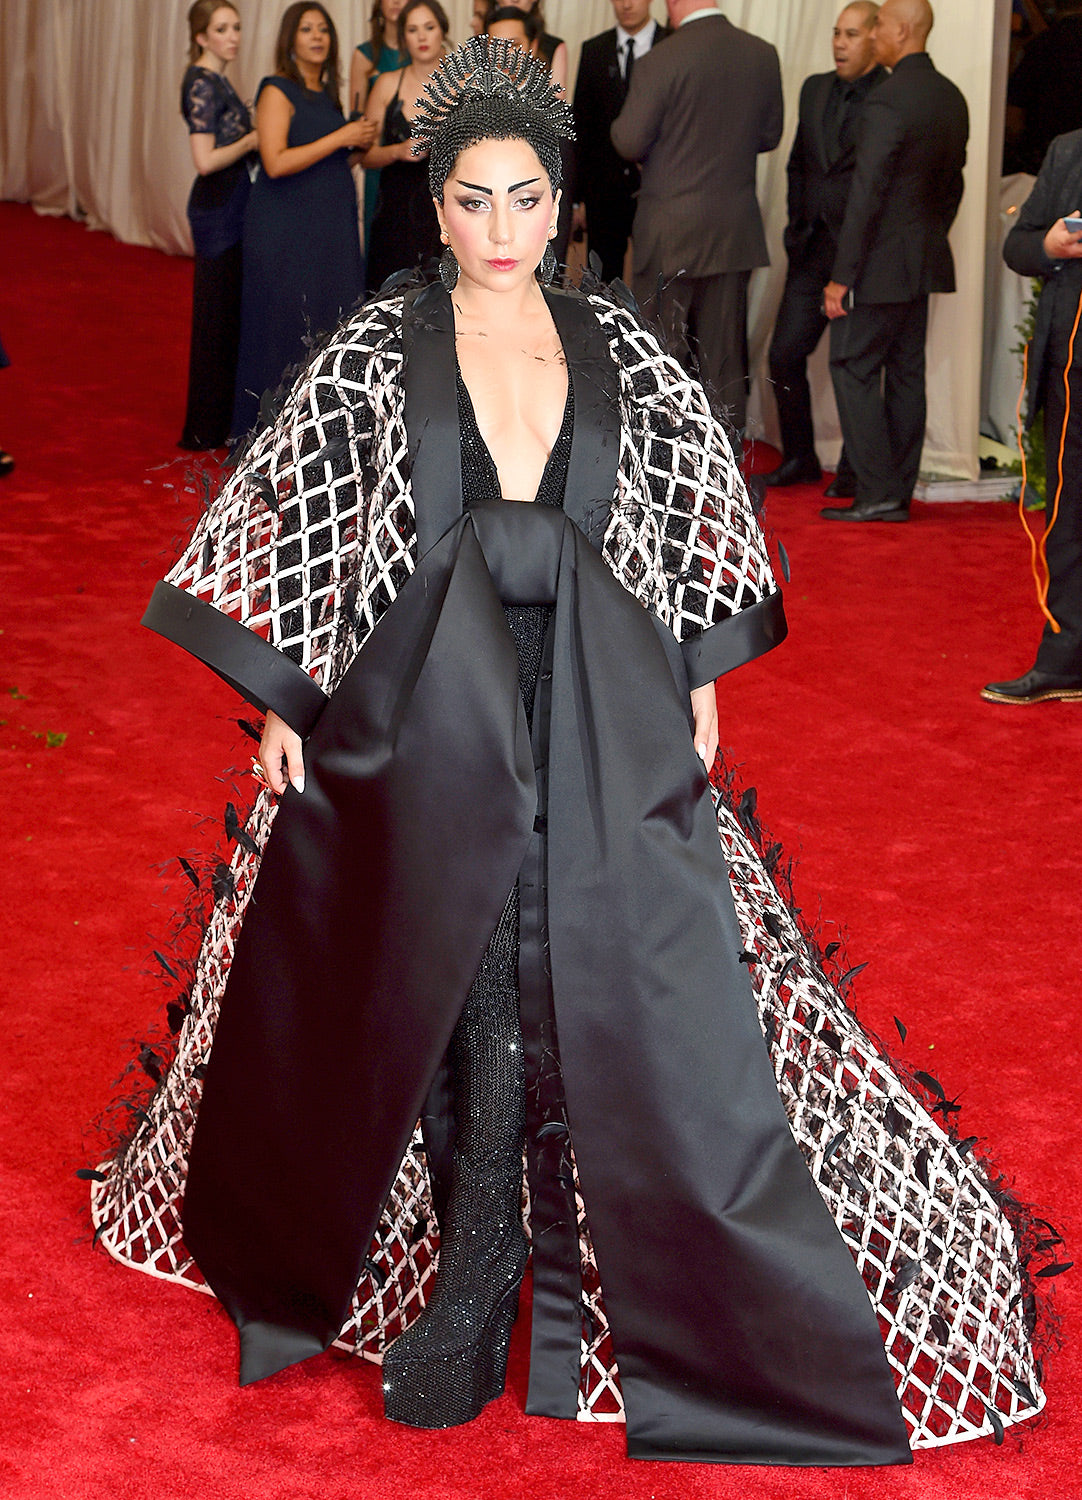 Lady Gaga is used to elaborate clothing. The singer looked relatively tame in this black and white look.